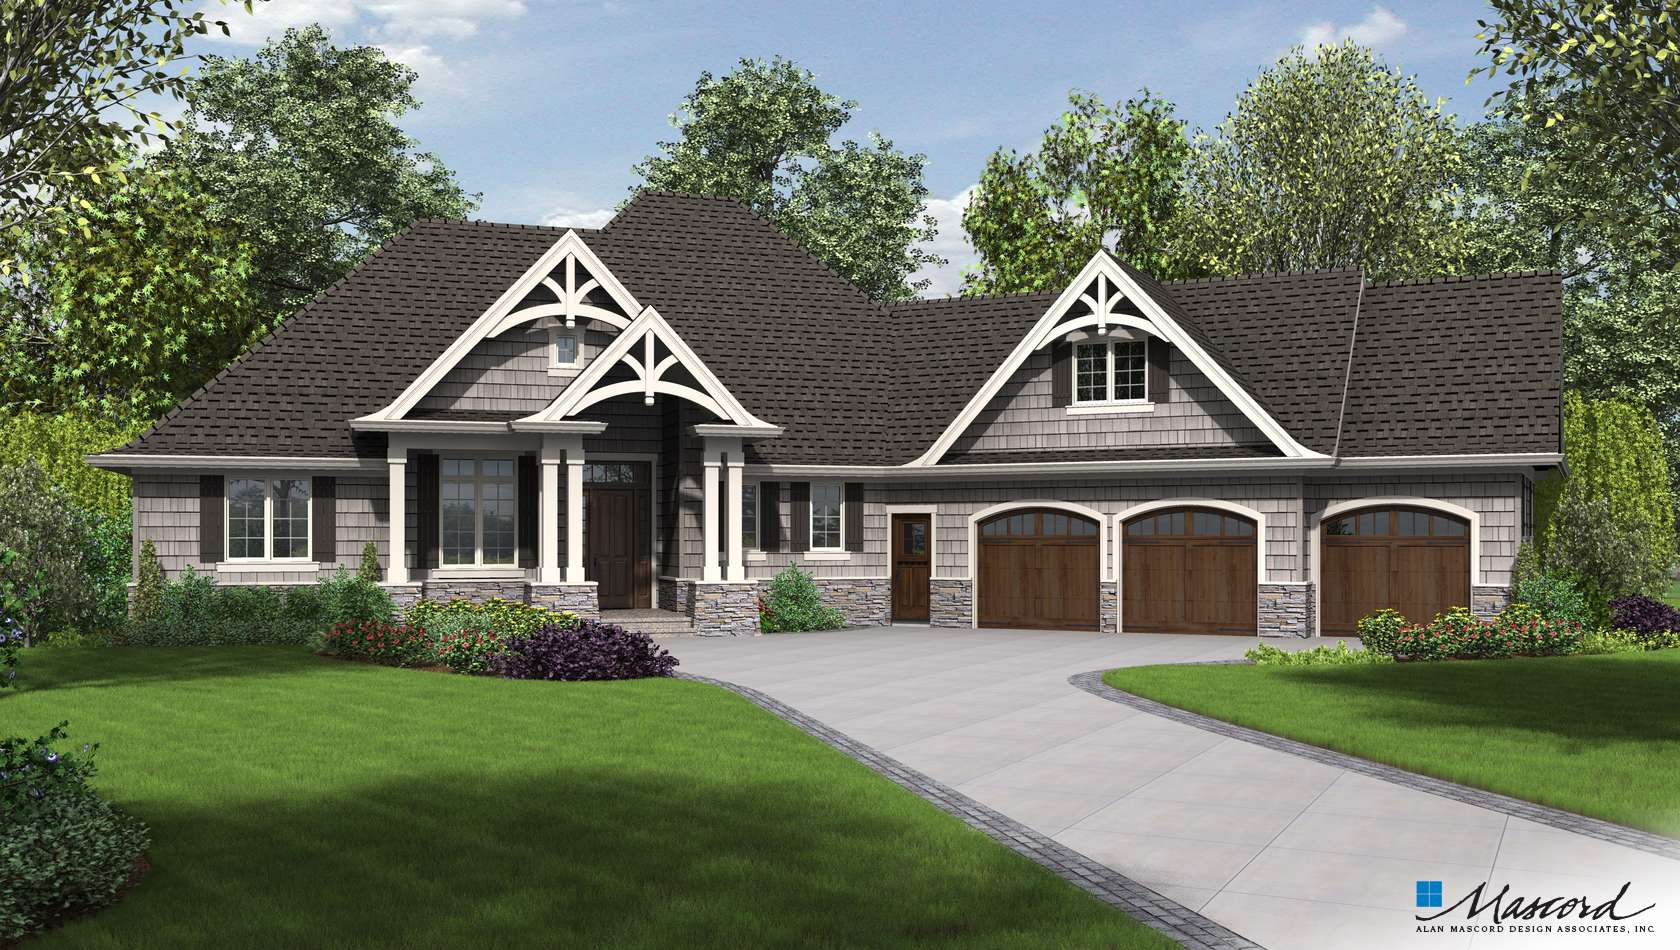 Main image for house plan B1248B: The